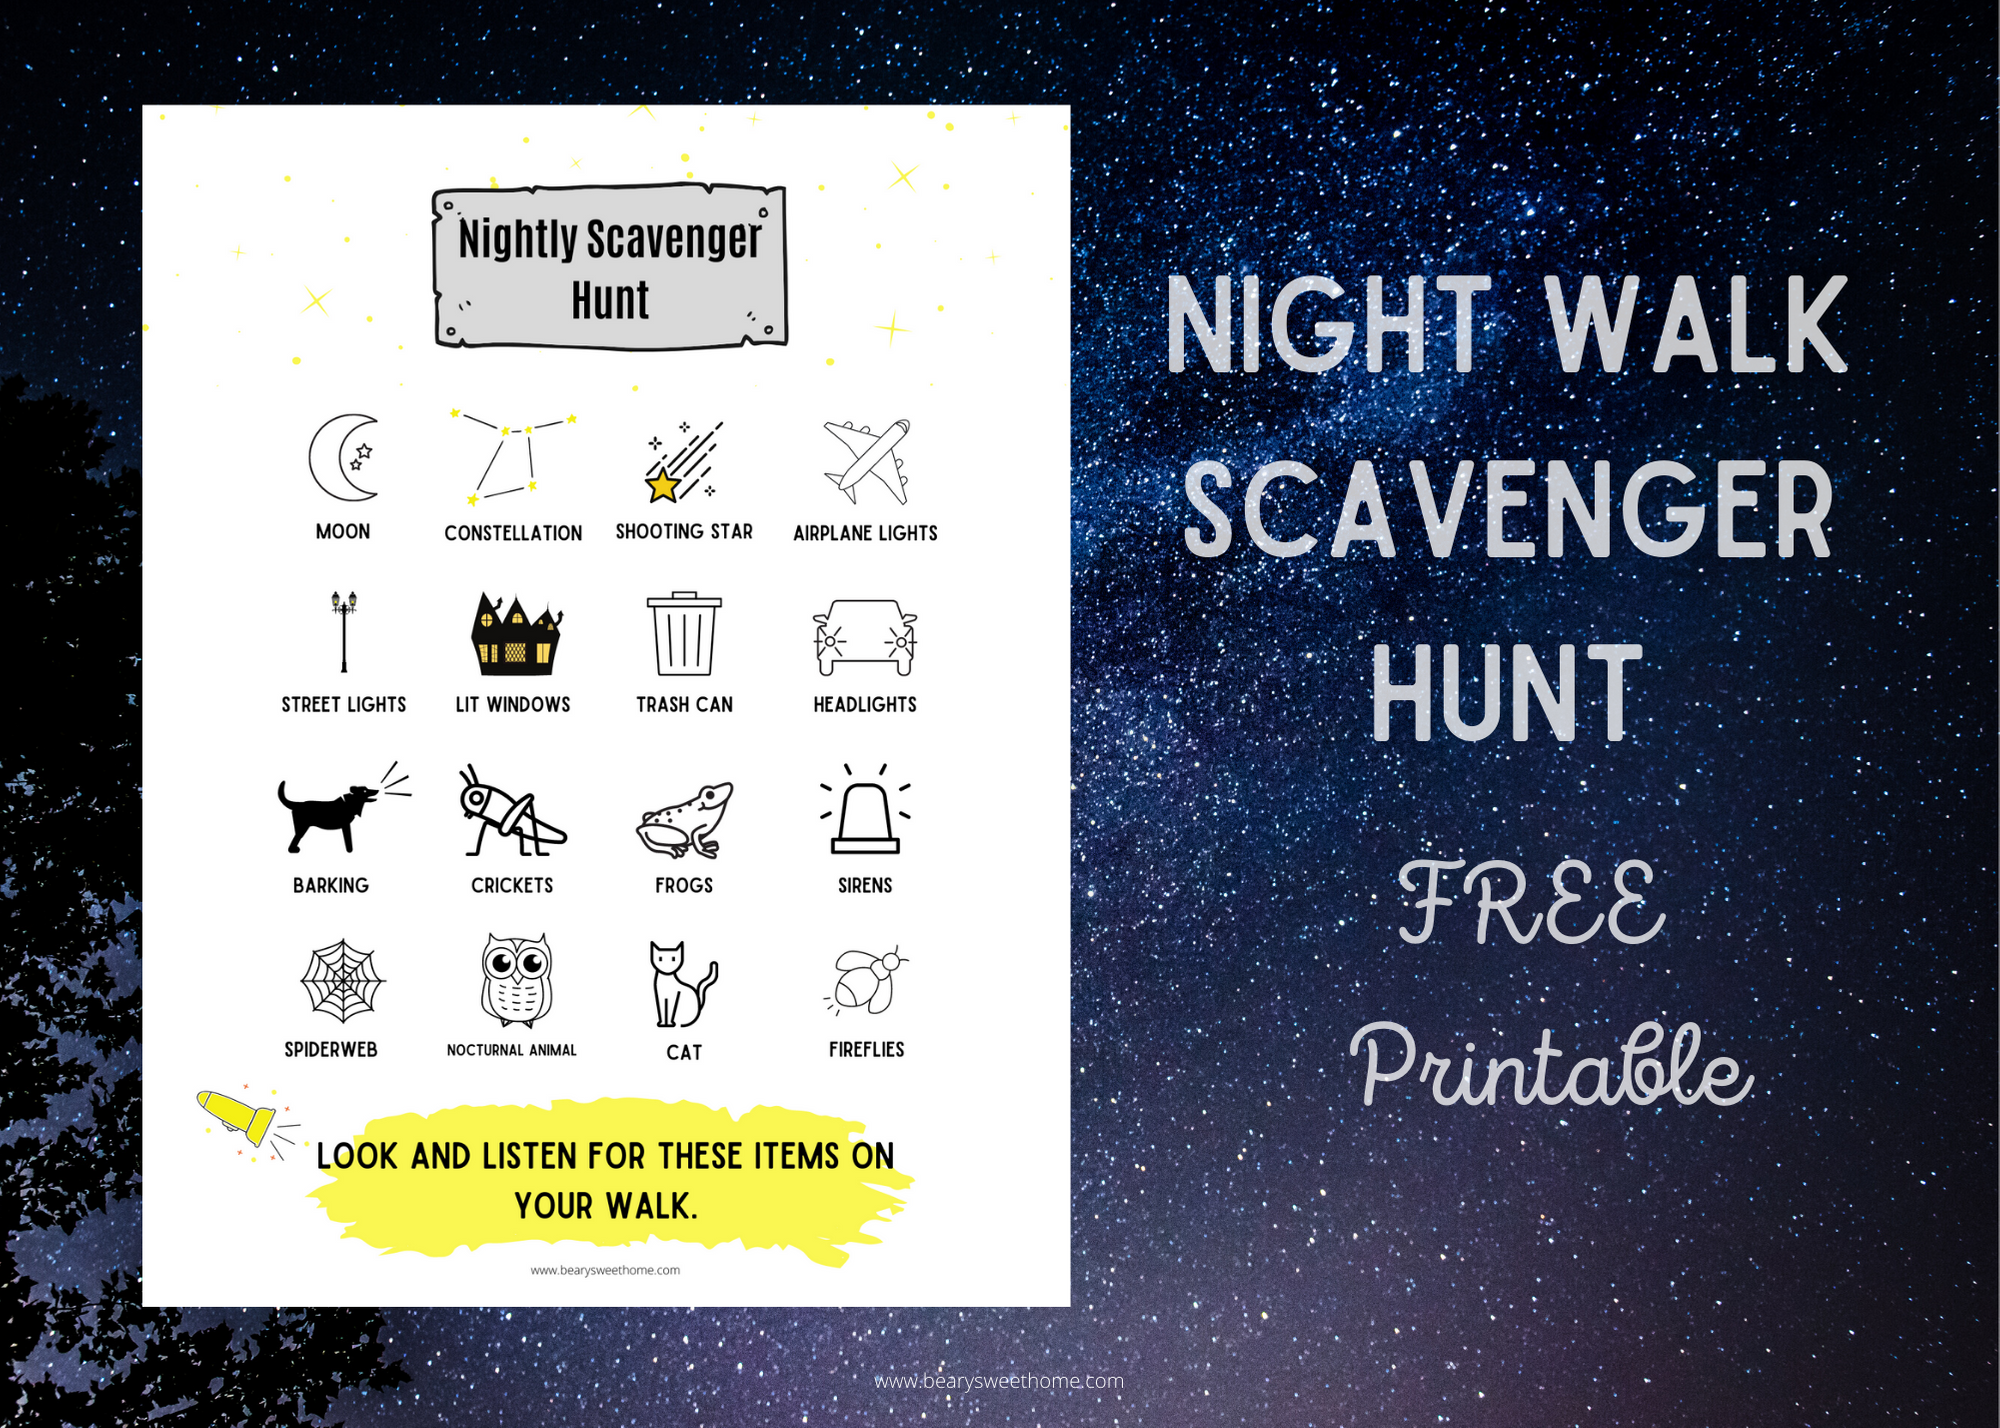 Night walk scavenger hunt for kids